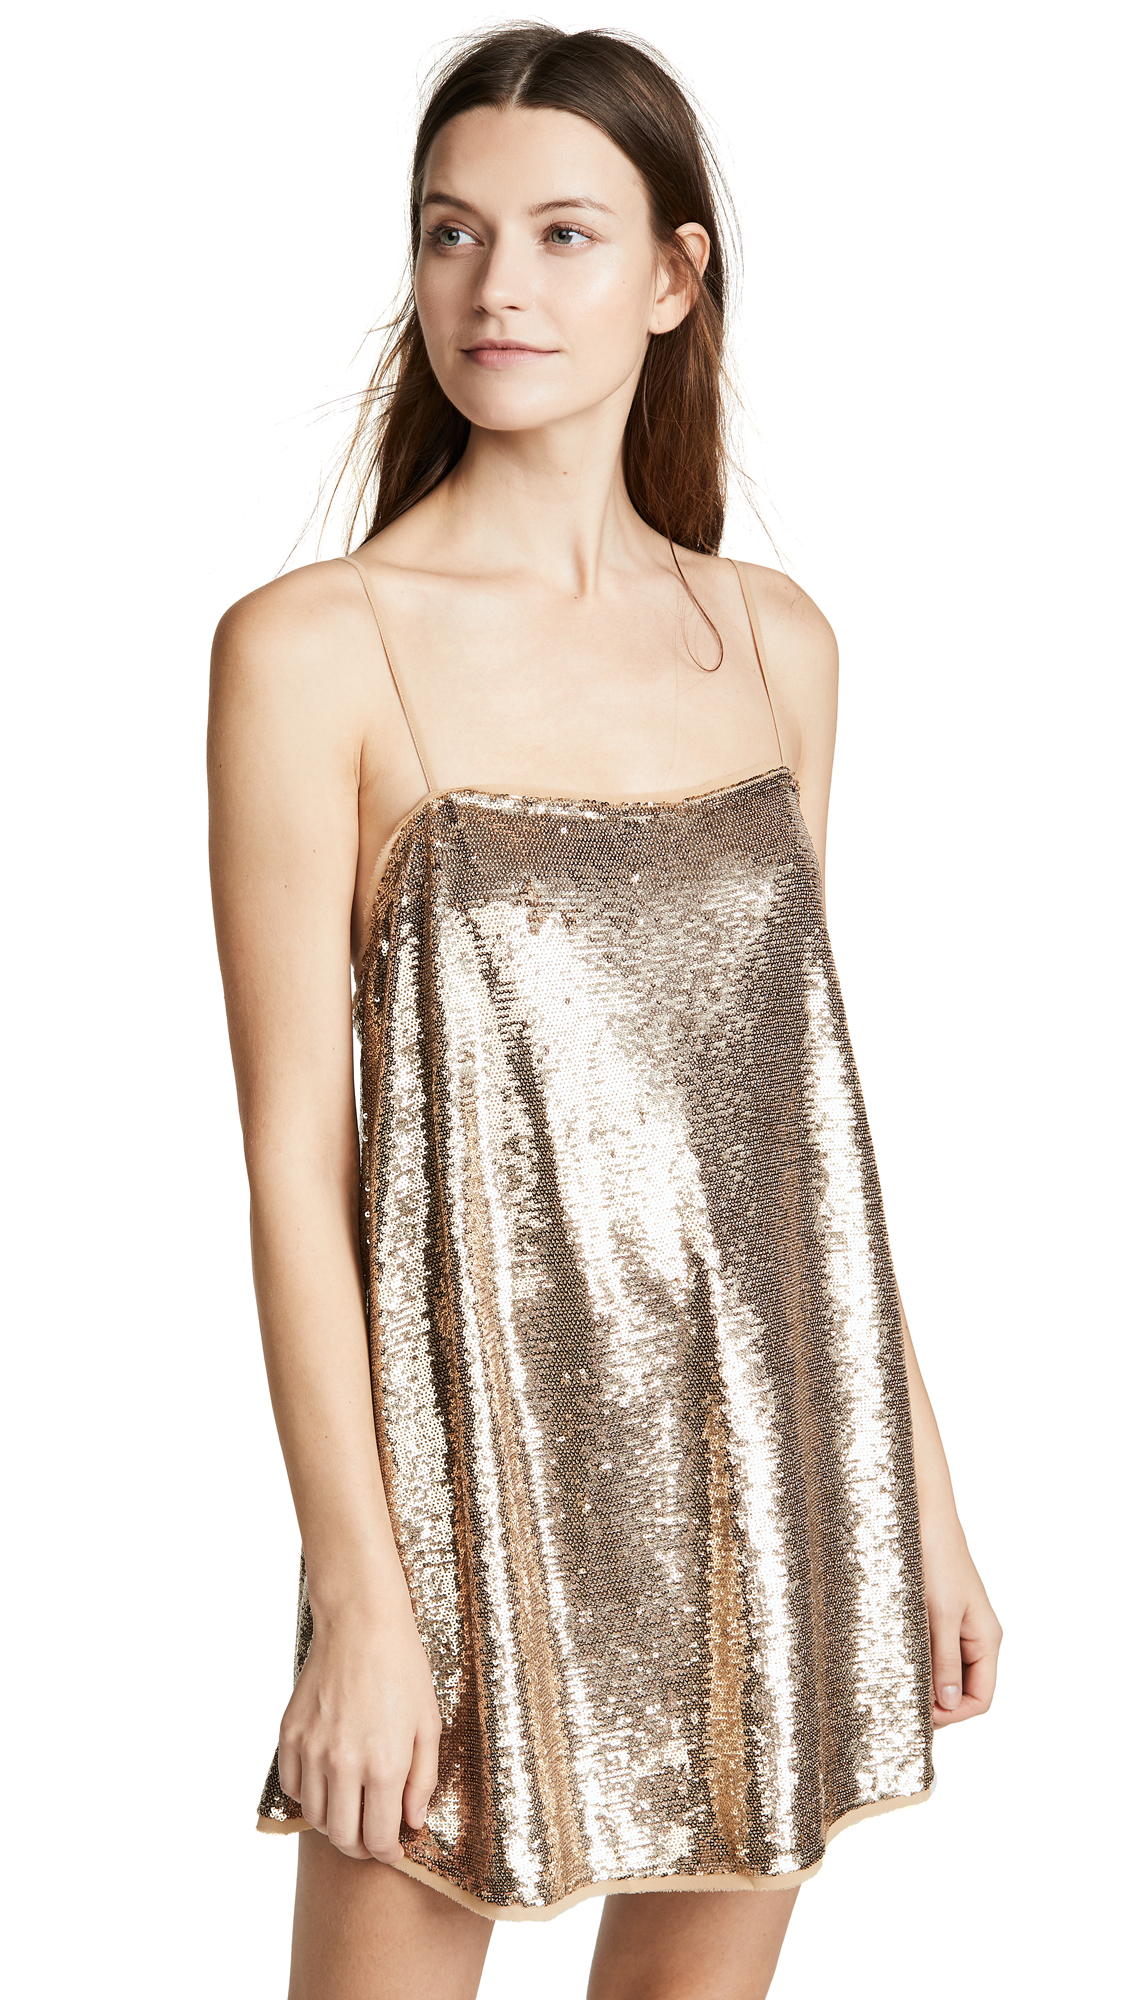 Free People Time To Shine Sequin Slip Dress - Gold